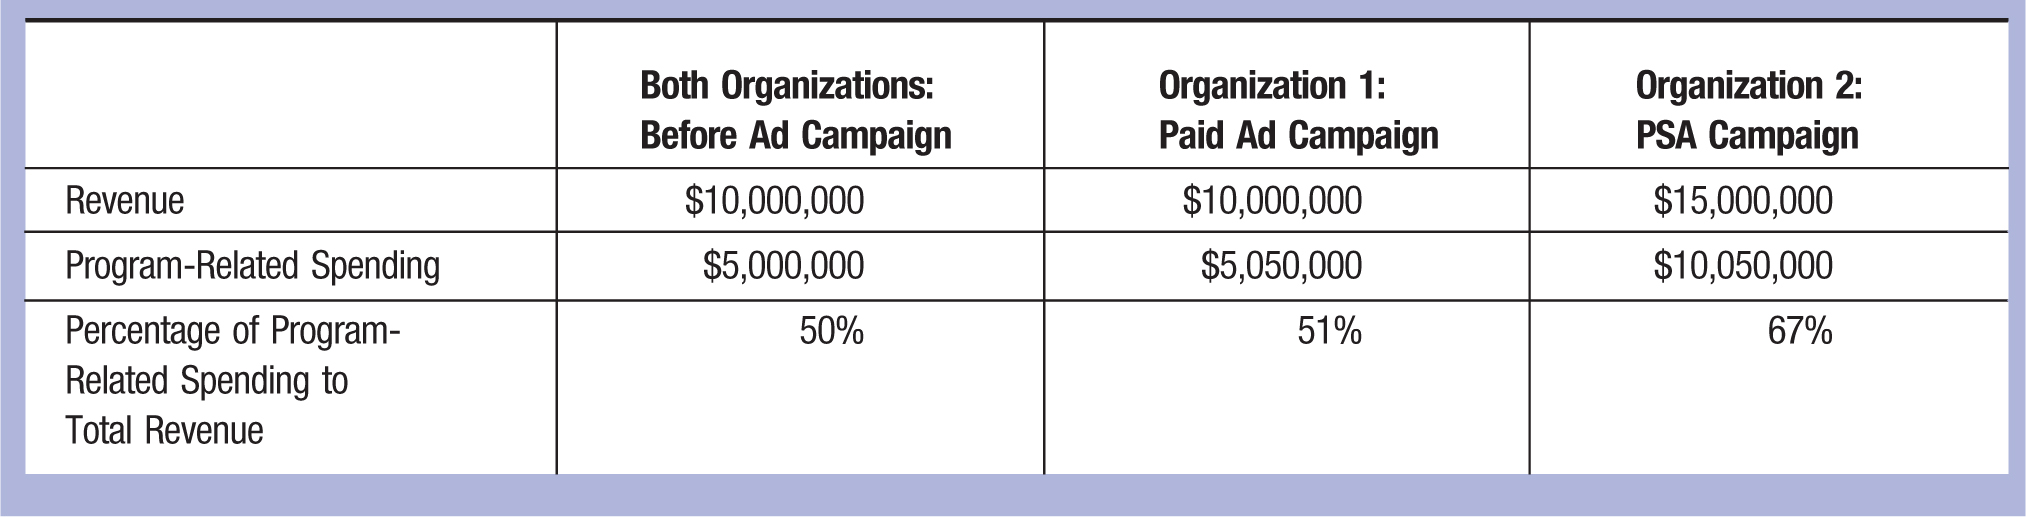 Both Organizations: Before Ad Campaign; Organization 1: Paid Ad Campaign; Organization 2: PSA Campaign Revenue; $10,000,000; $10,000,000; $15,000,000 Program-Related Spending; $5,000,000; $5,050,000; $10,050,000 Percentage of Program-Related Spending to Total Revenue; 50%; 51%; 67%